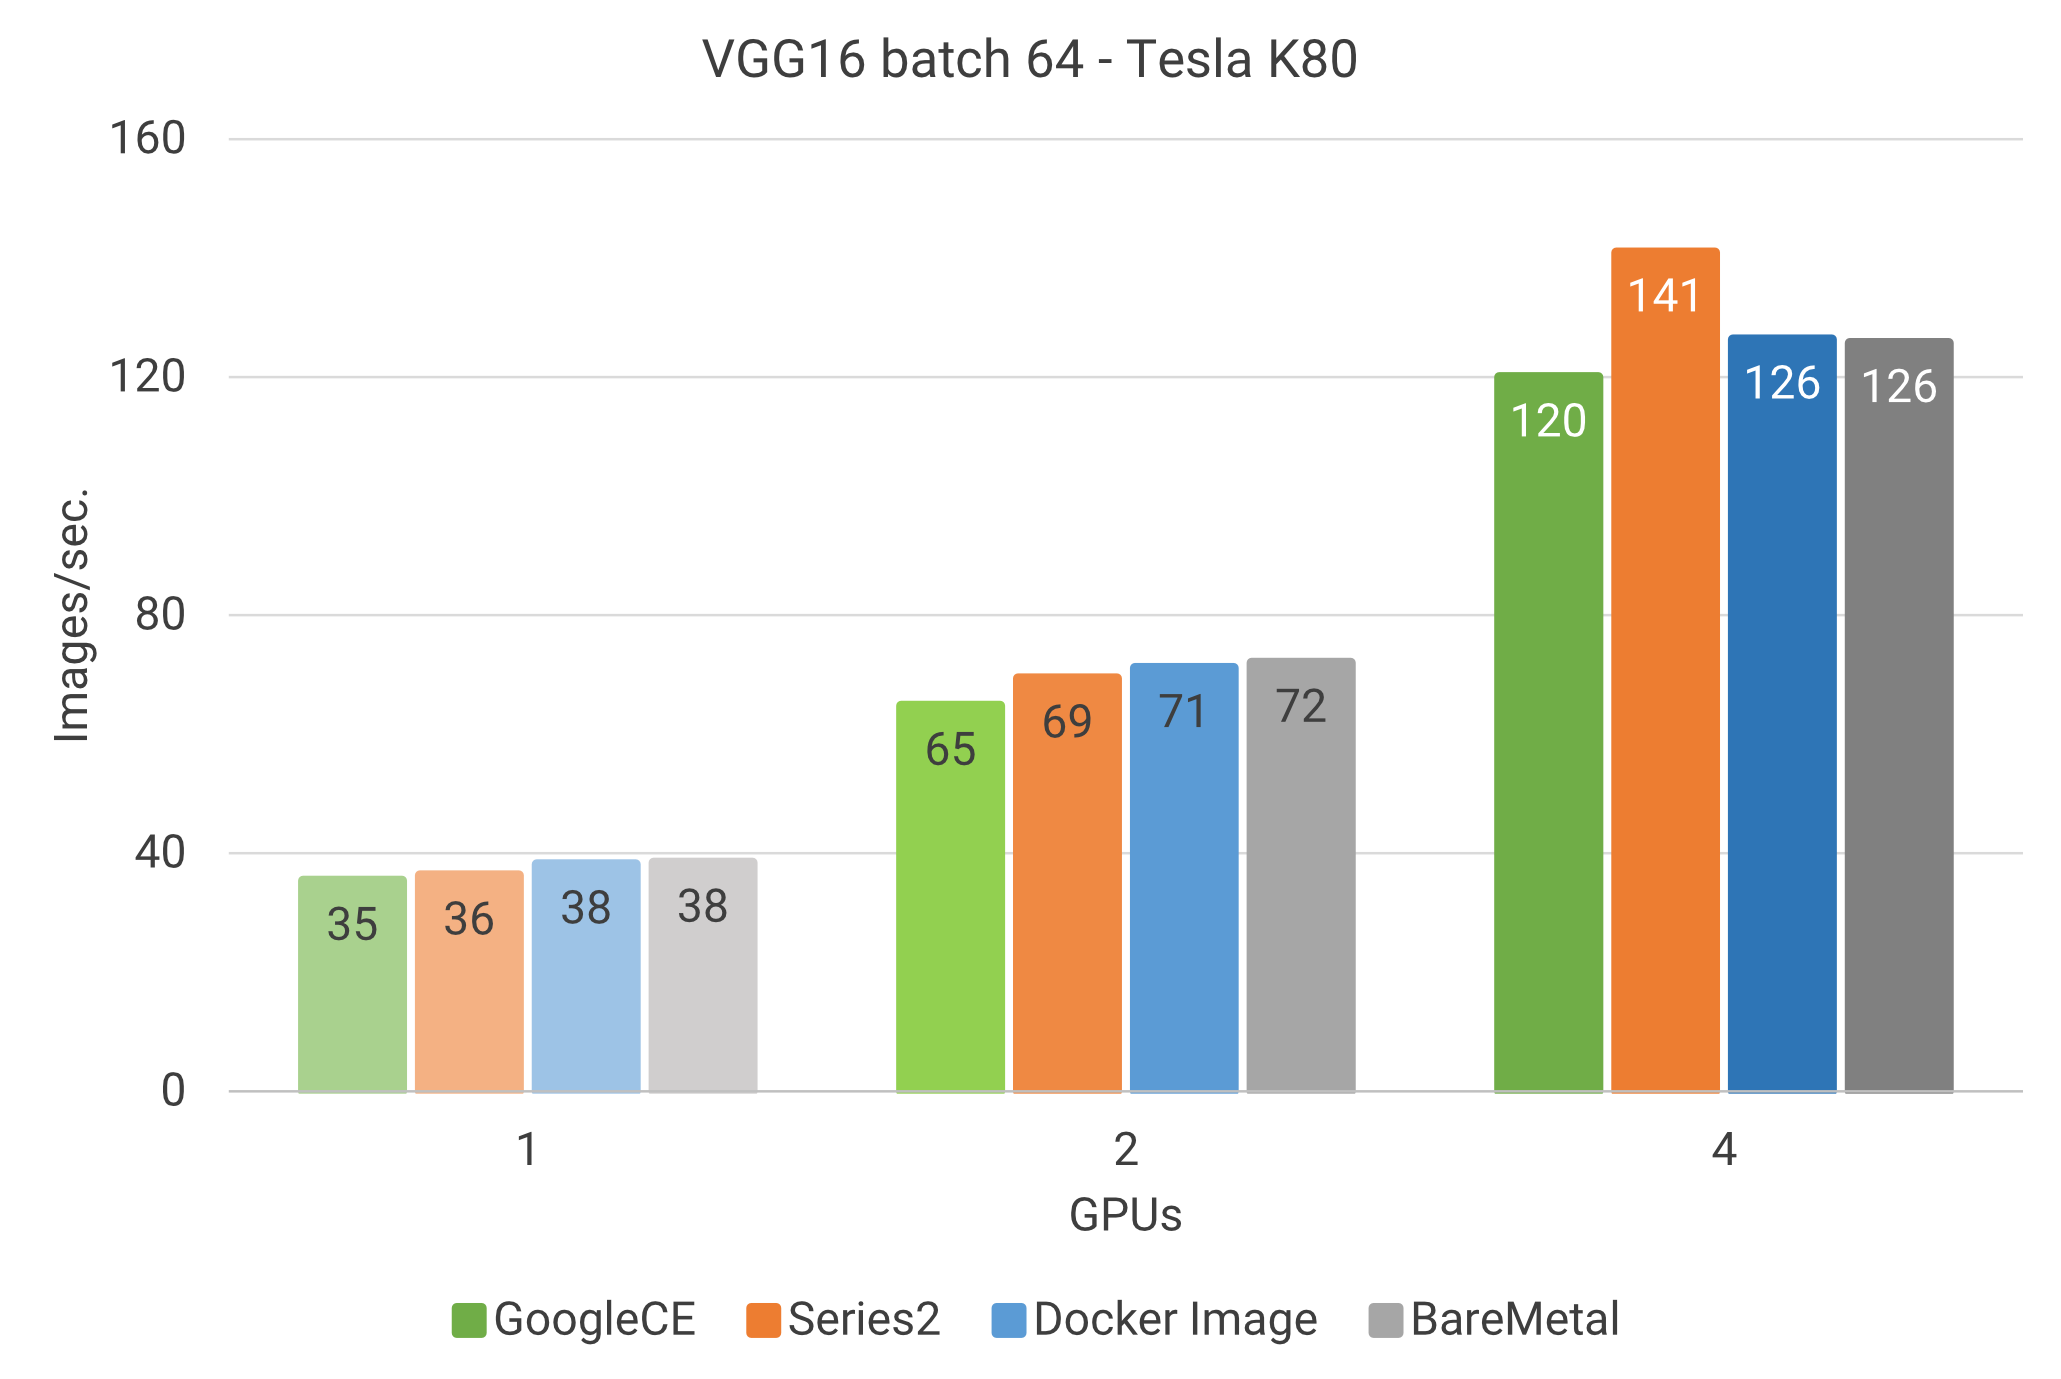 Training: VGG16 model with Tesla K80 on various machines.